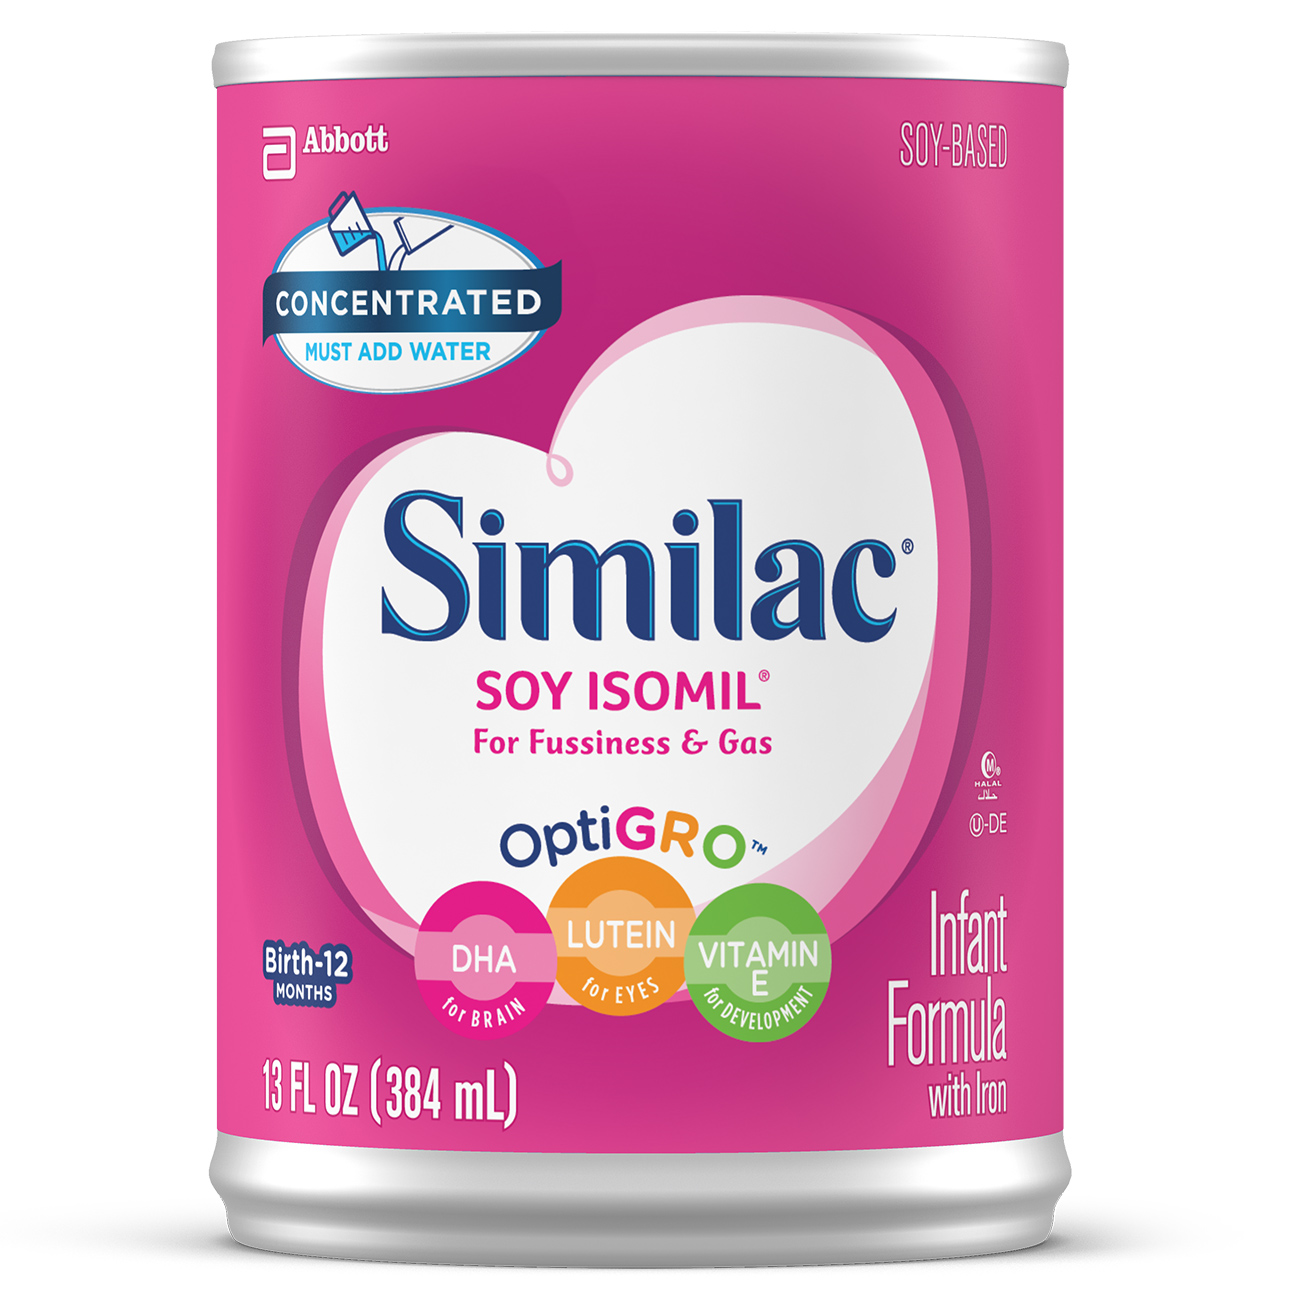 Similac Soy Isomil Infant Formula with Iron, Concentrated Liquid, 13 fl oz